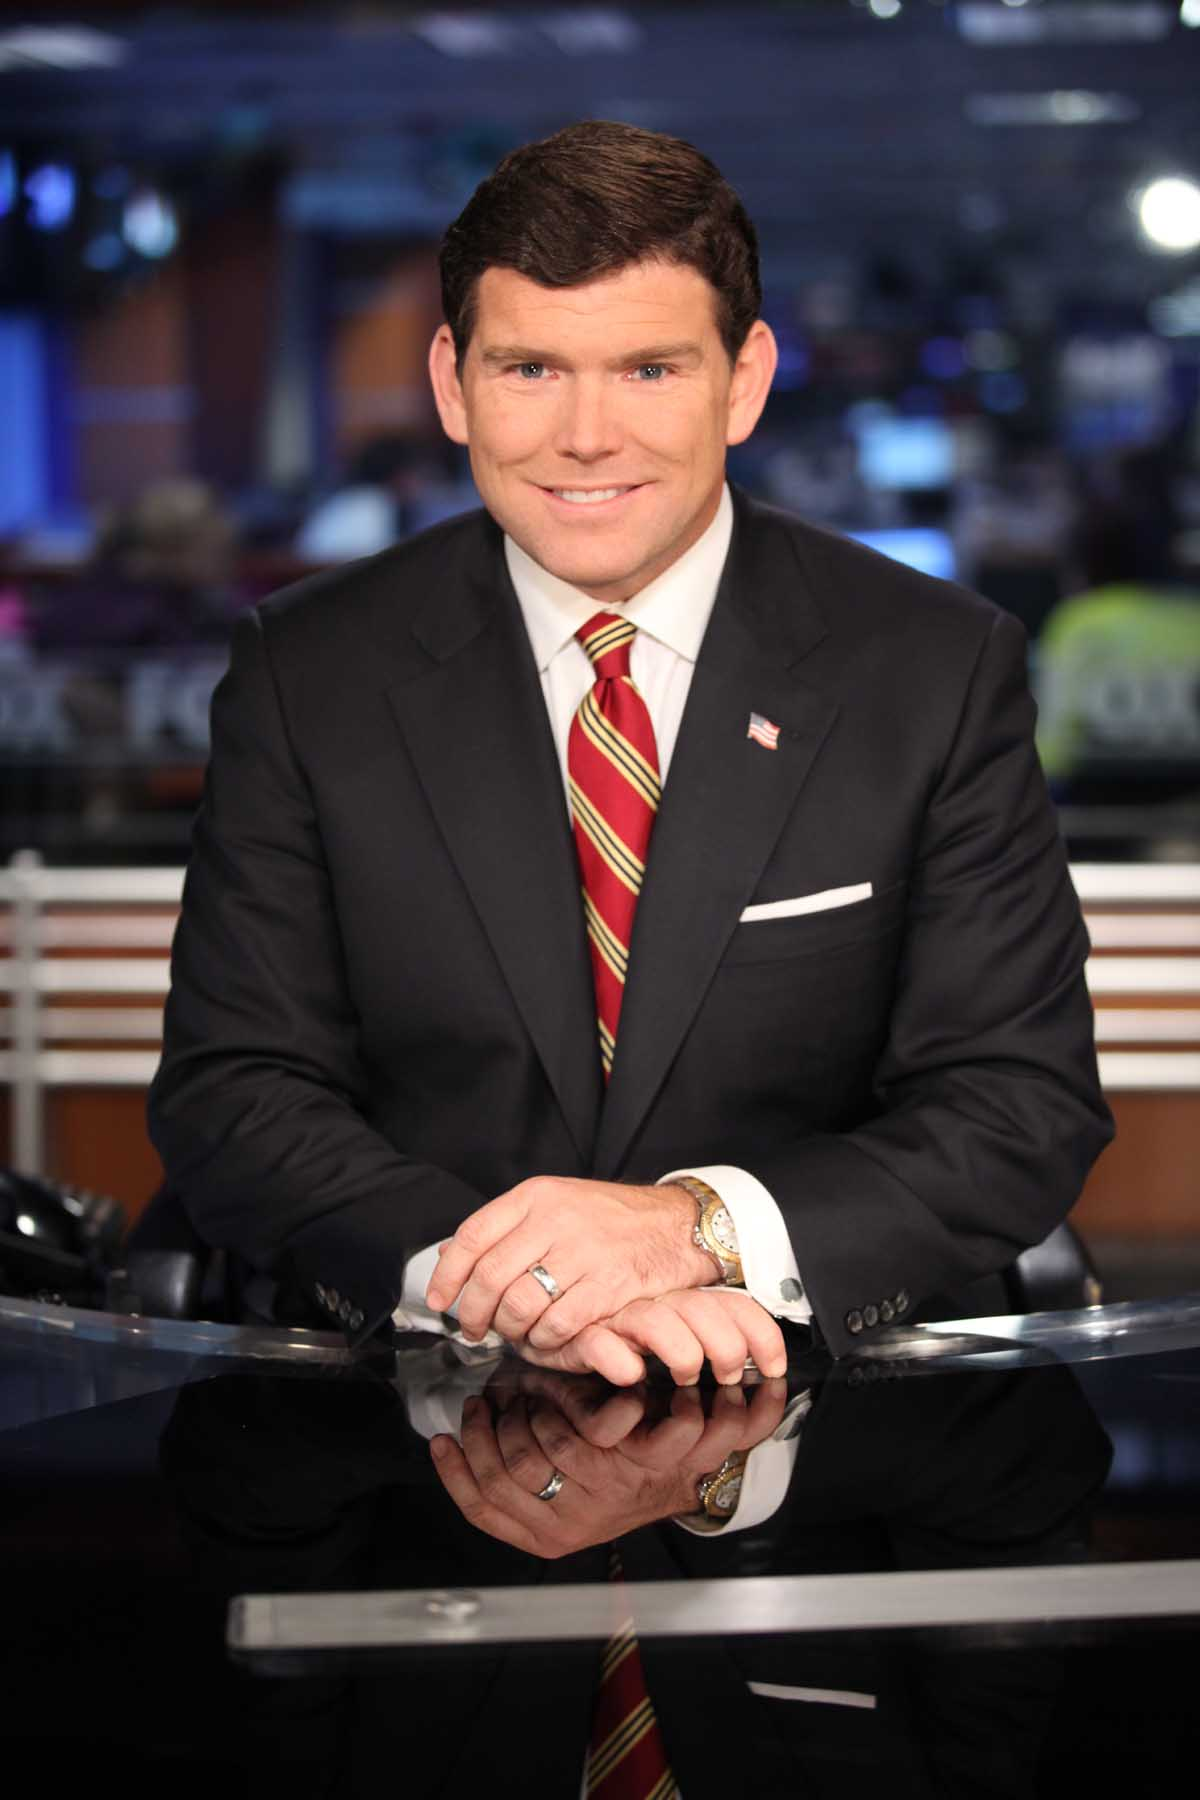 fox news anchor bret baier 92 returns to depauw for event on